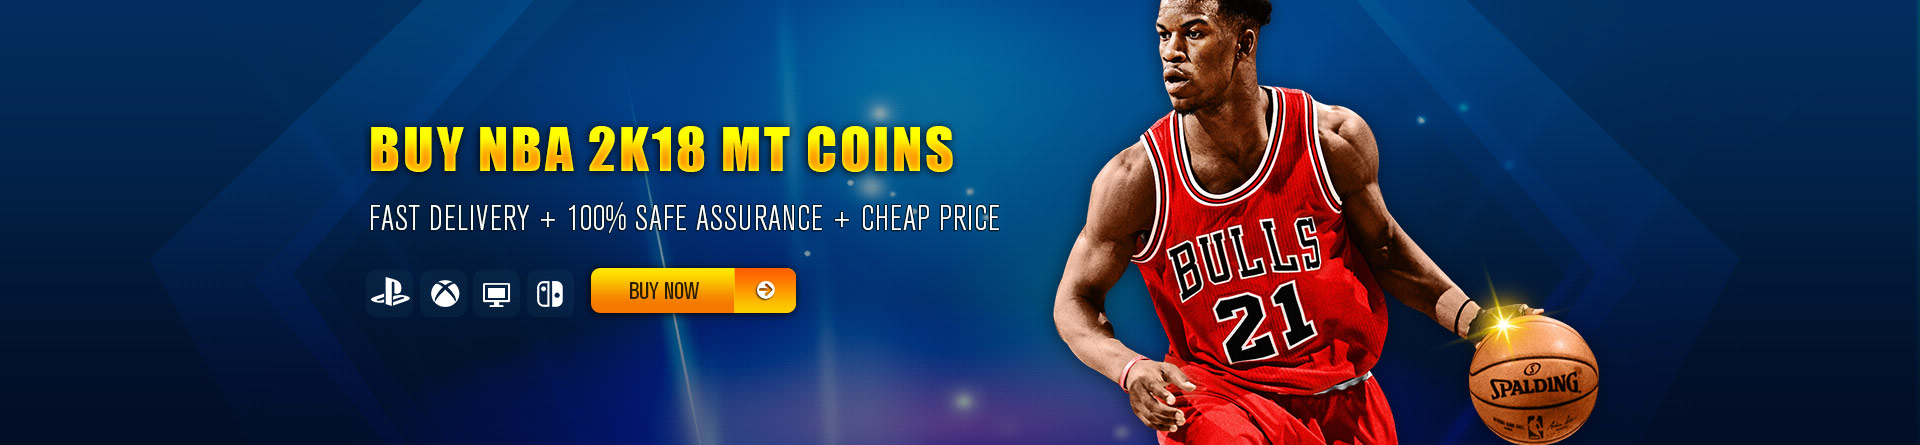 NBA 2K18 MT Coins